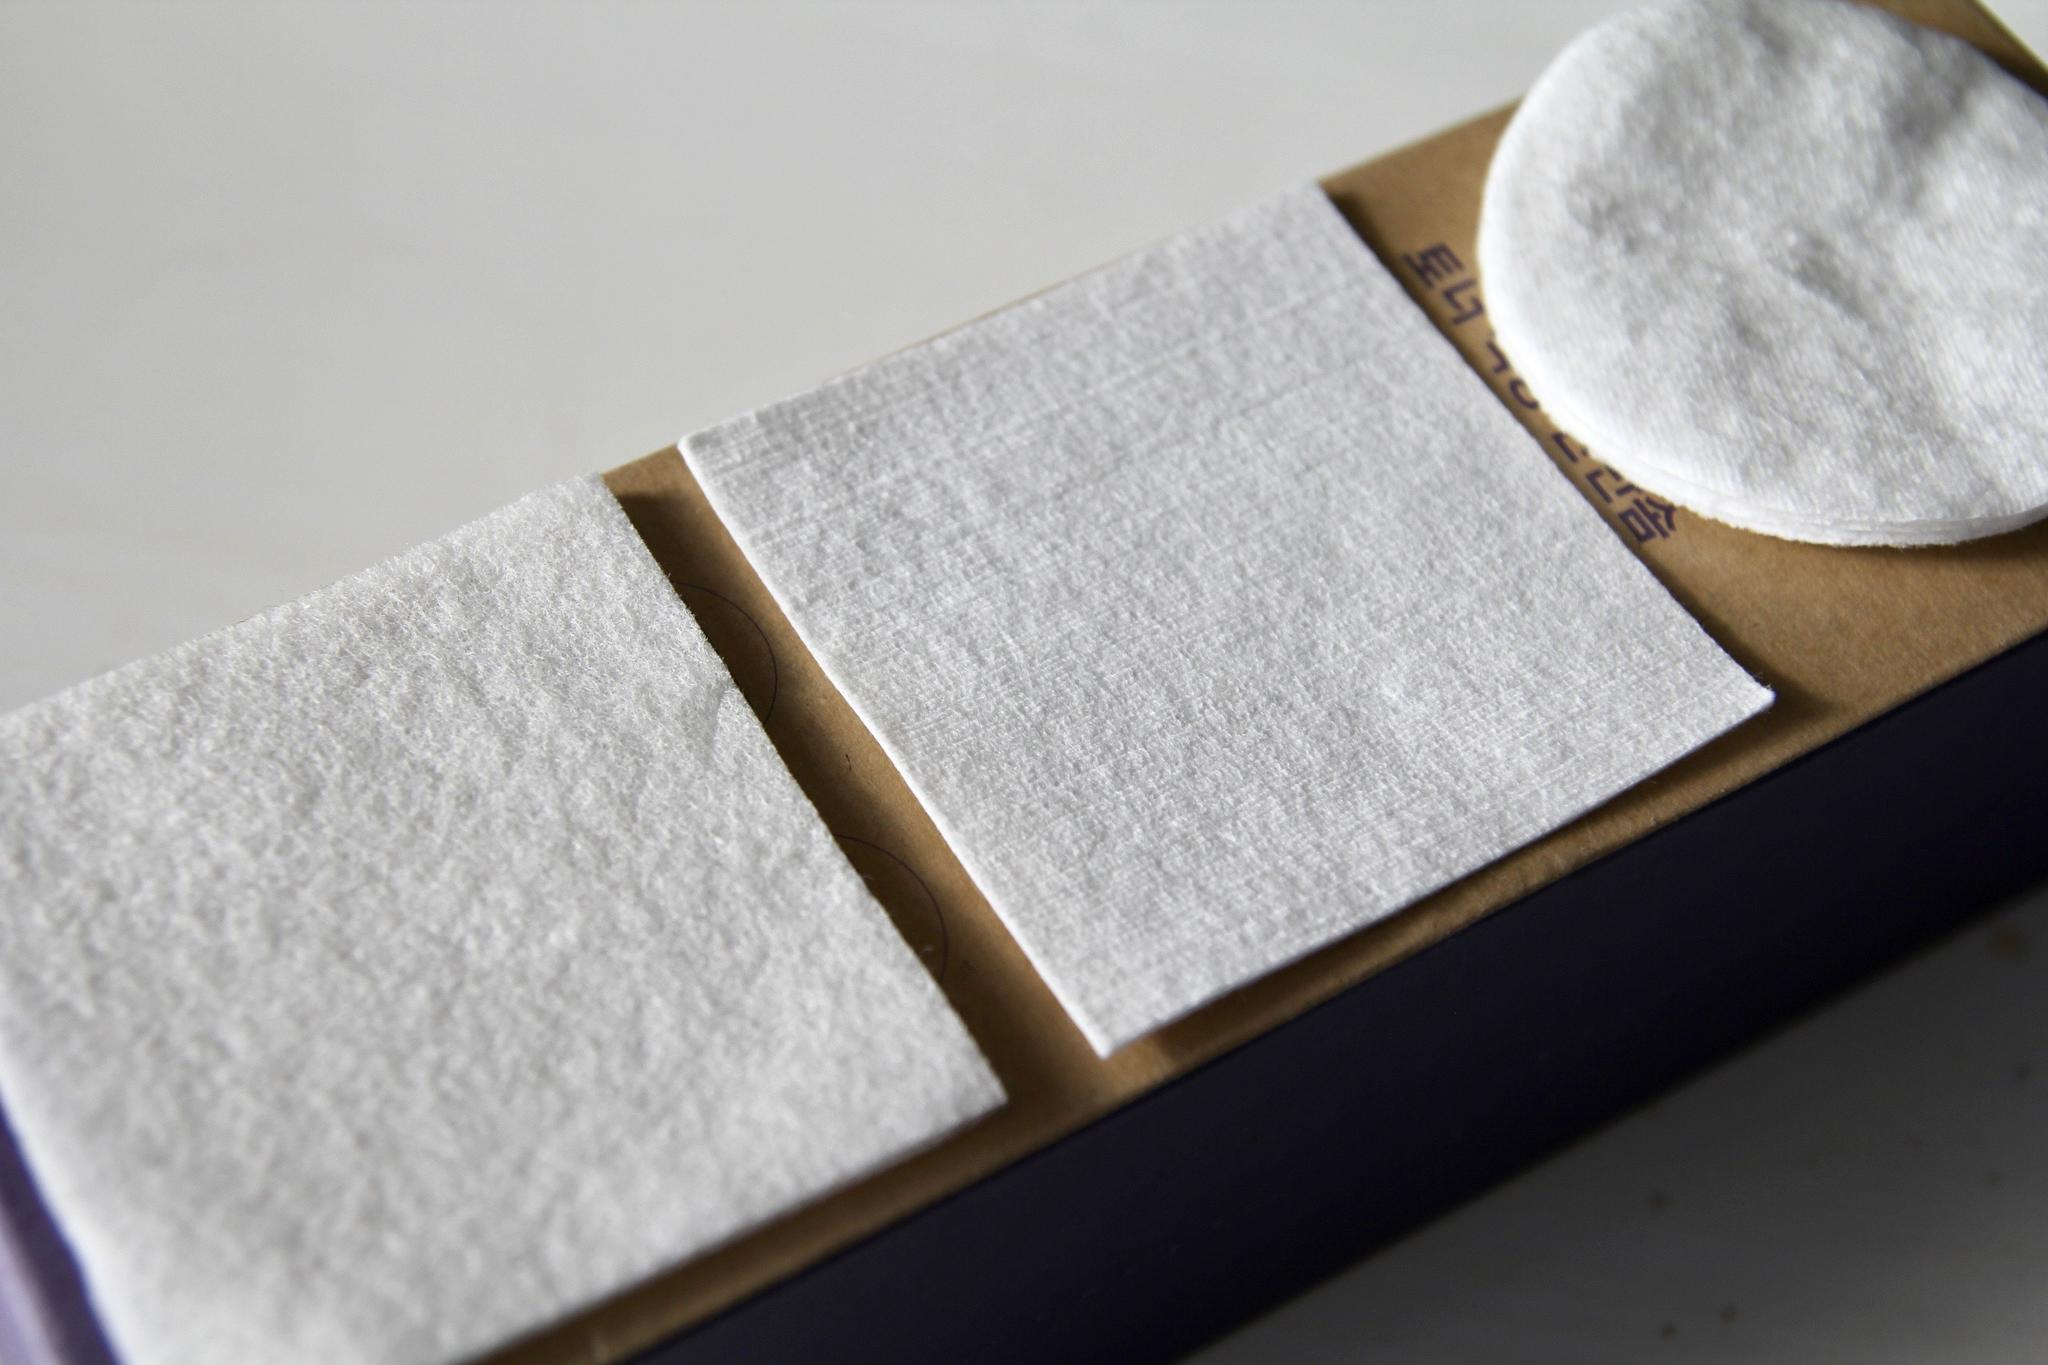 Klairs cotton pads compared to conventional cotton pads from the drugstore. Left: sponge pads. Middle: compressed pads.